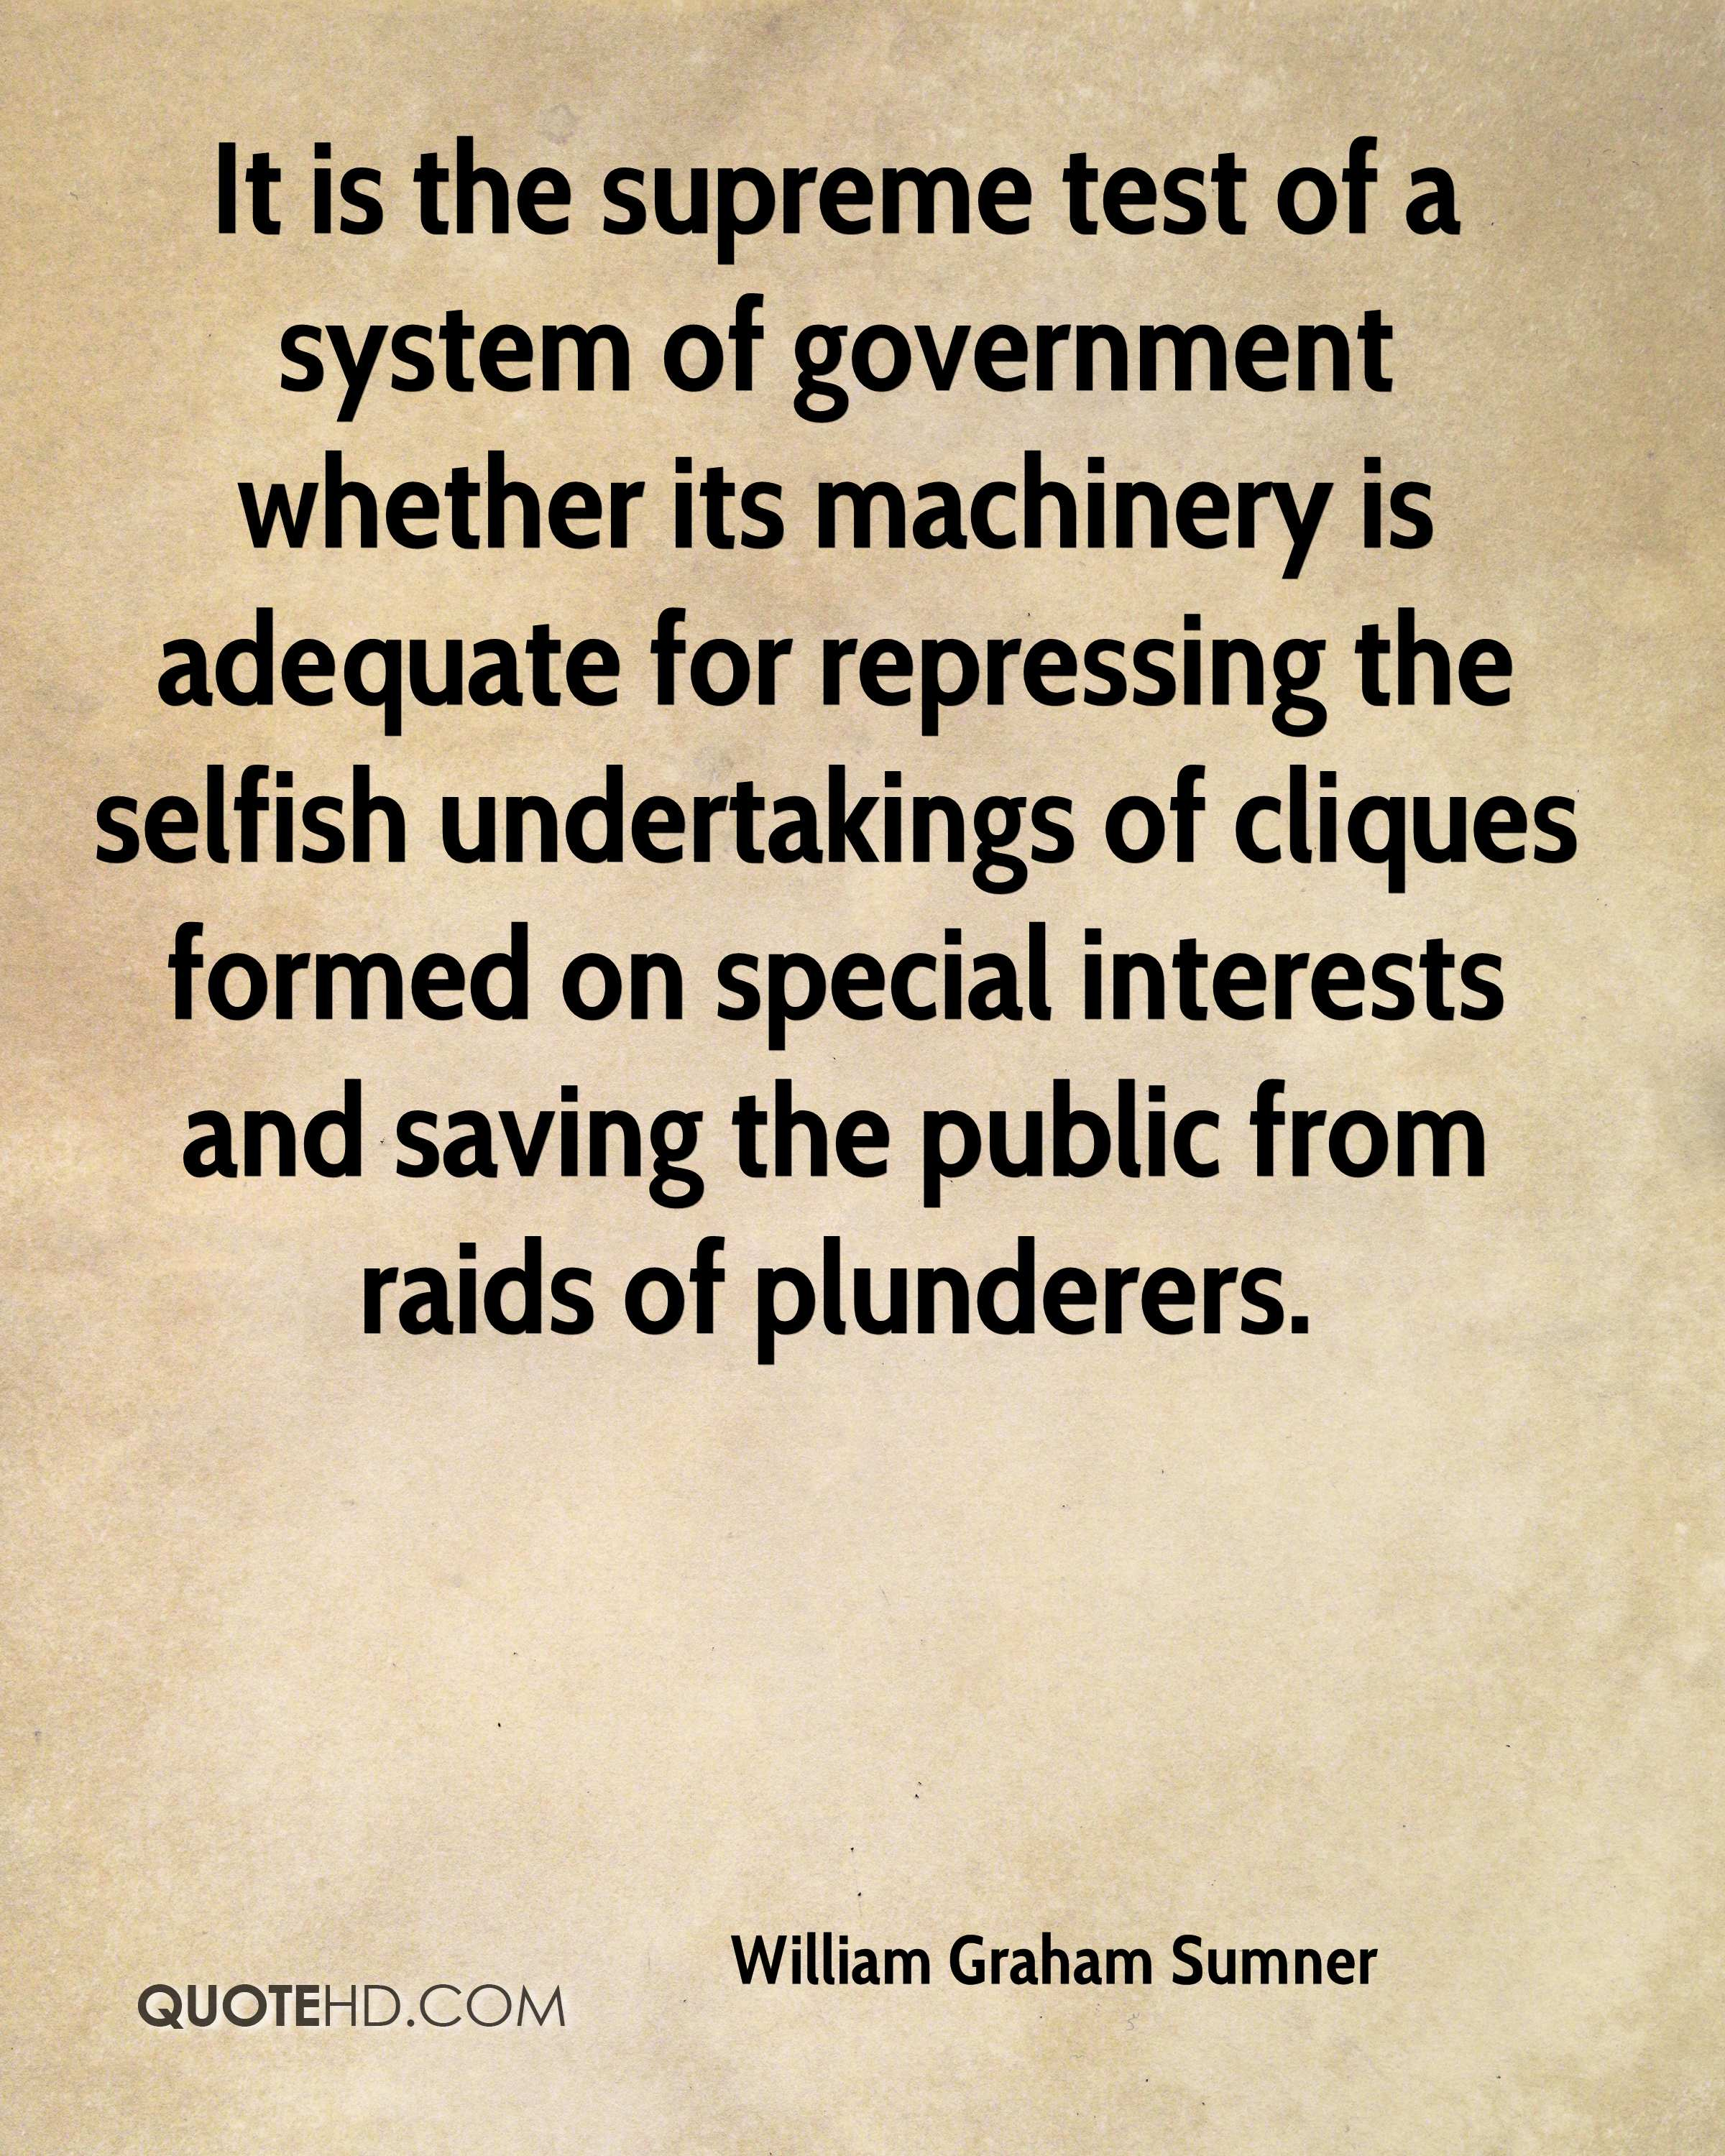 It is the supreme test of a system of government whether its machinery is adequate for repressing the selfish undertakings of cliques formed on special interests and saving the public from raids of plunderers.